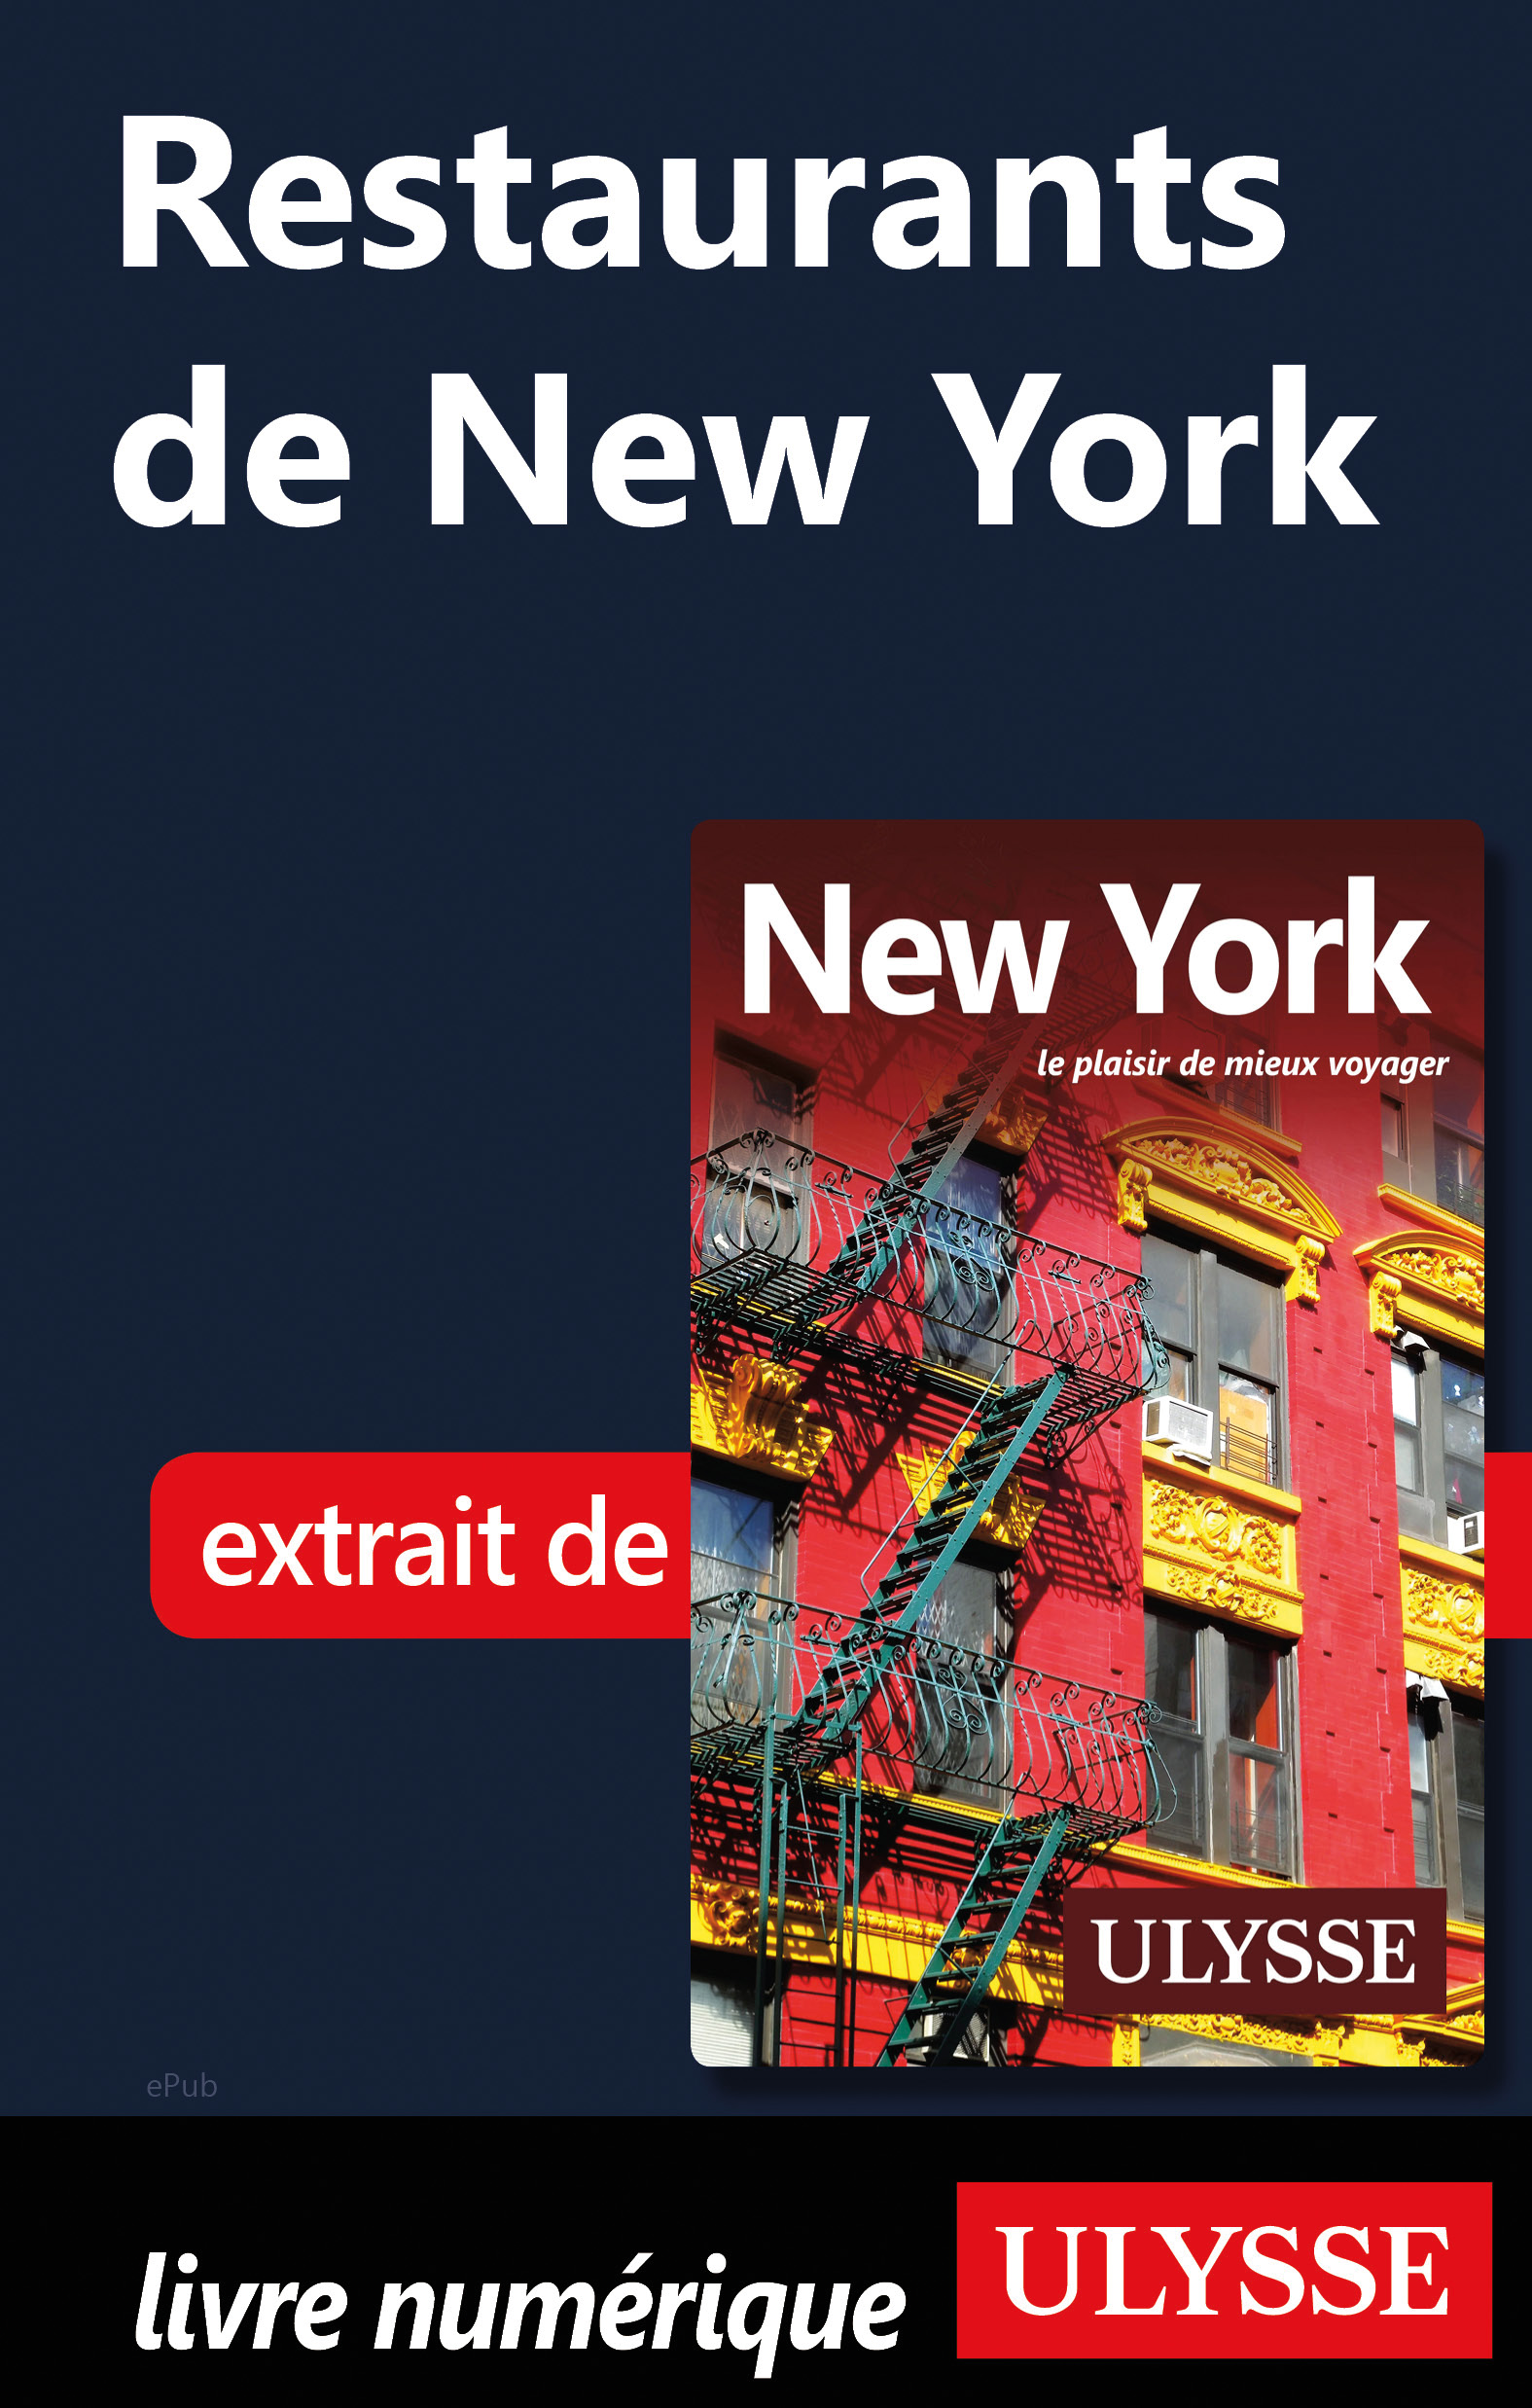 Restaurants de New York